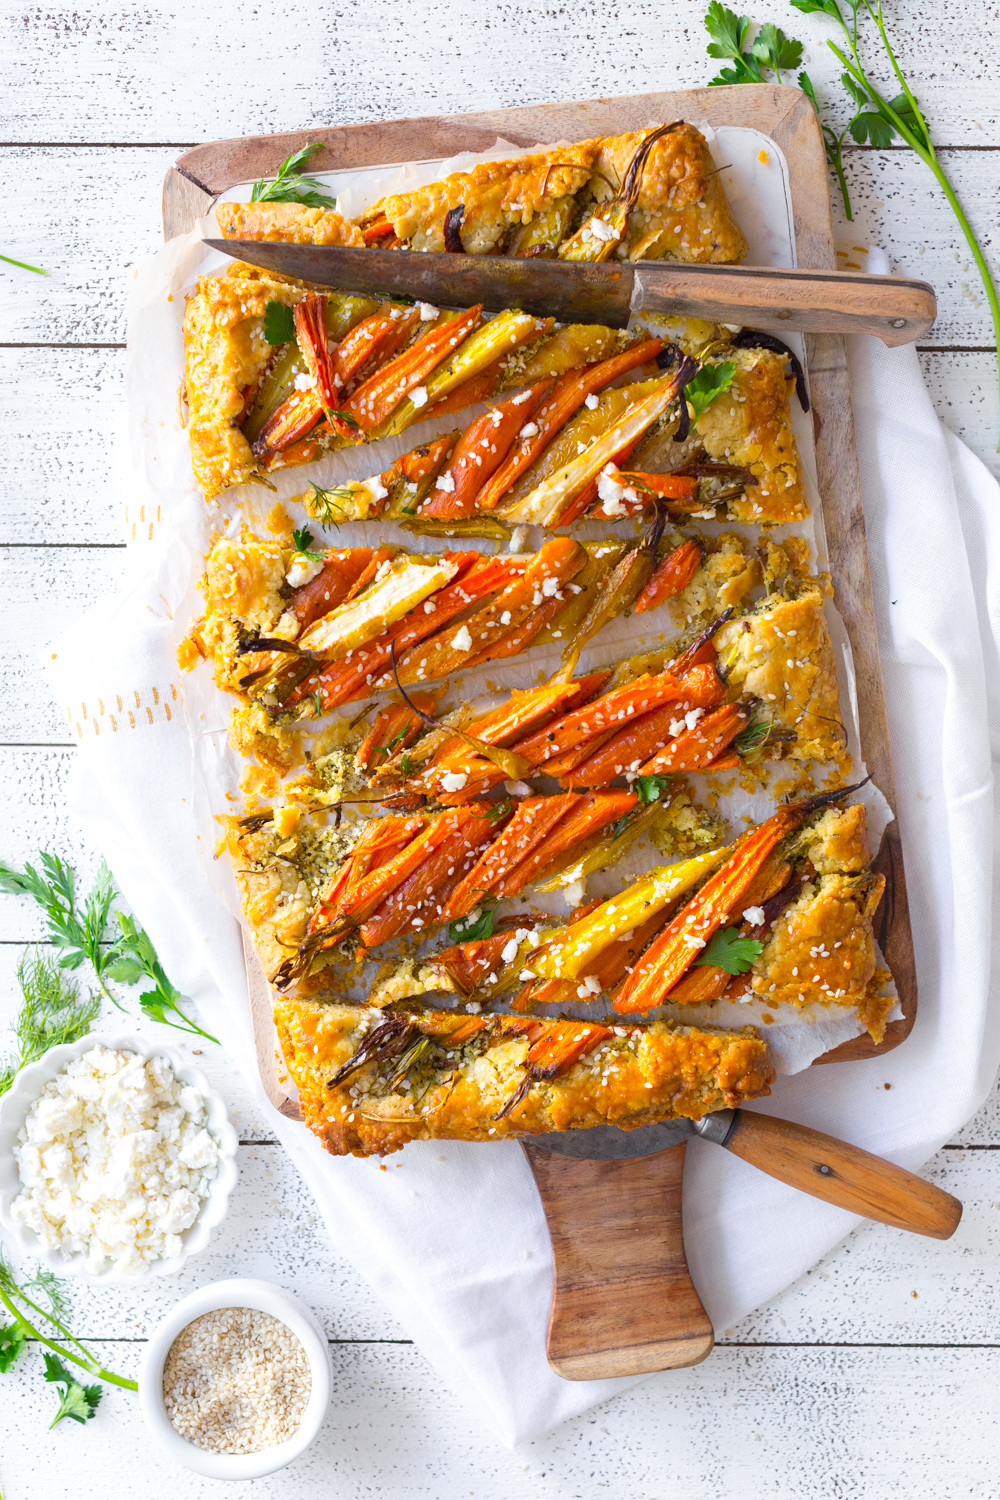 Roasted Carrot & Herby Feta Galette sliced